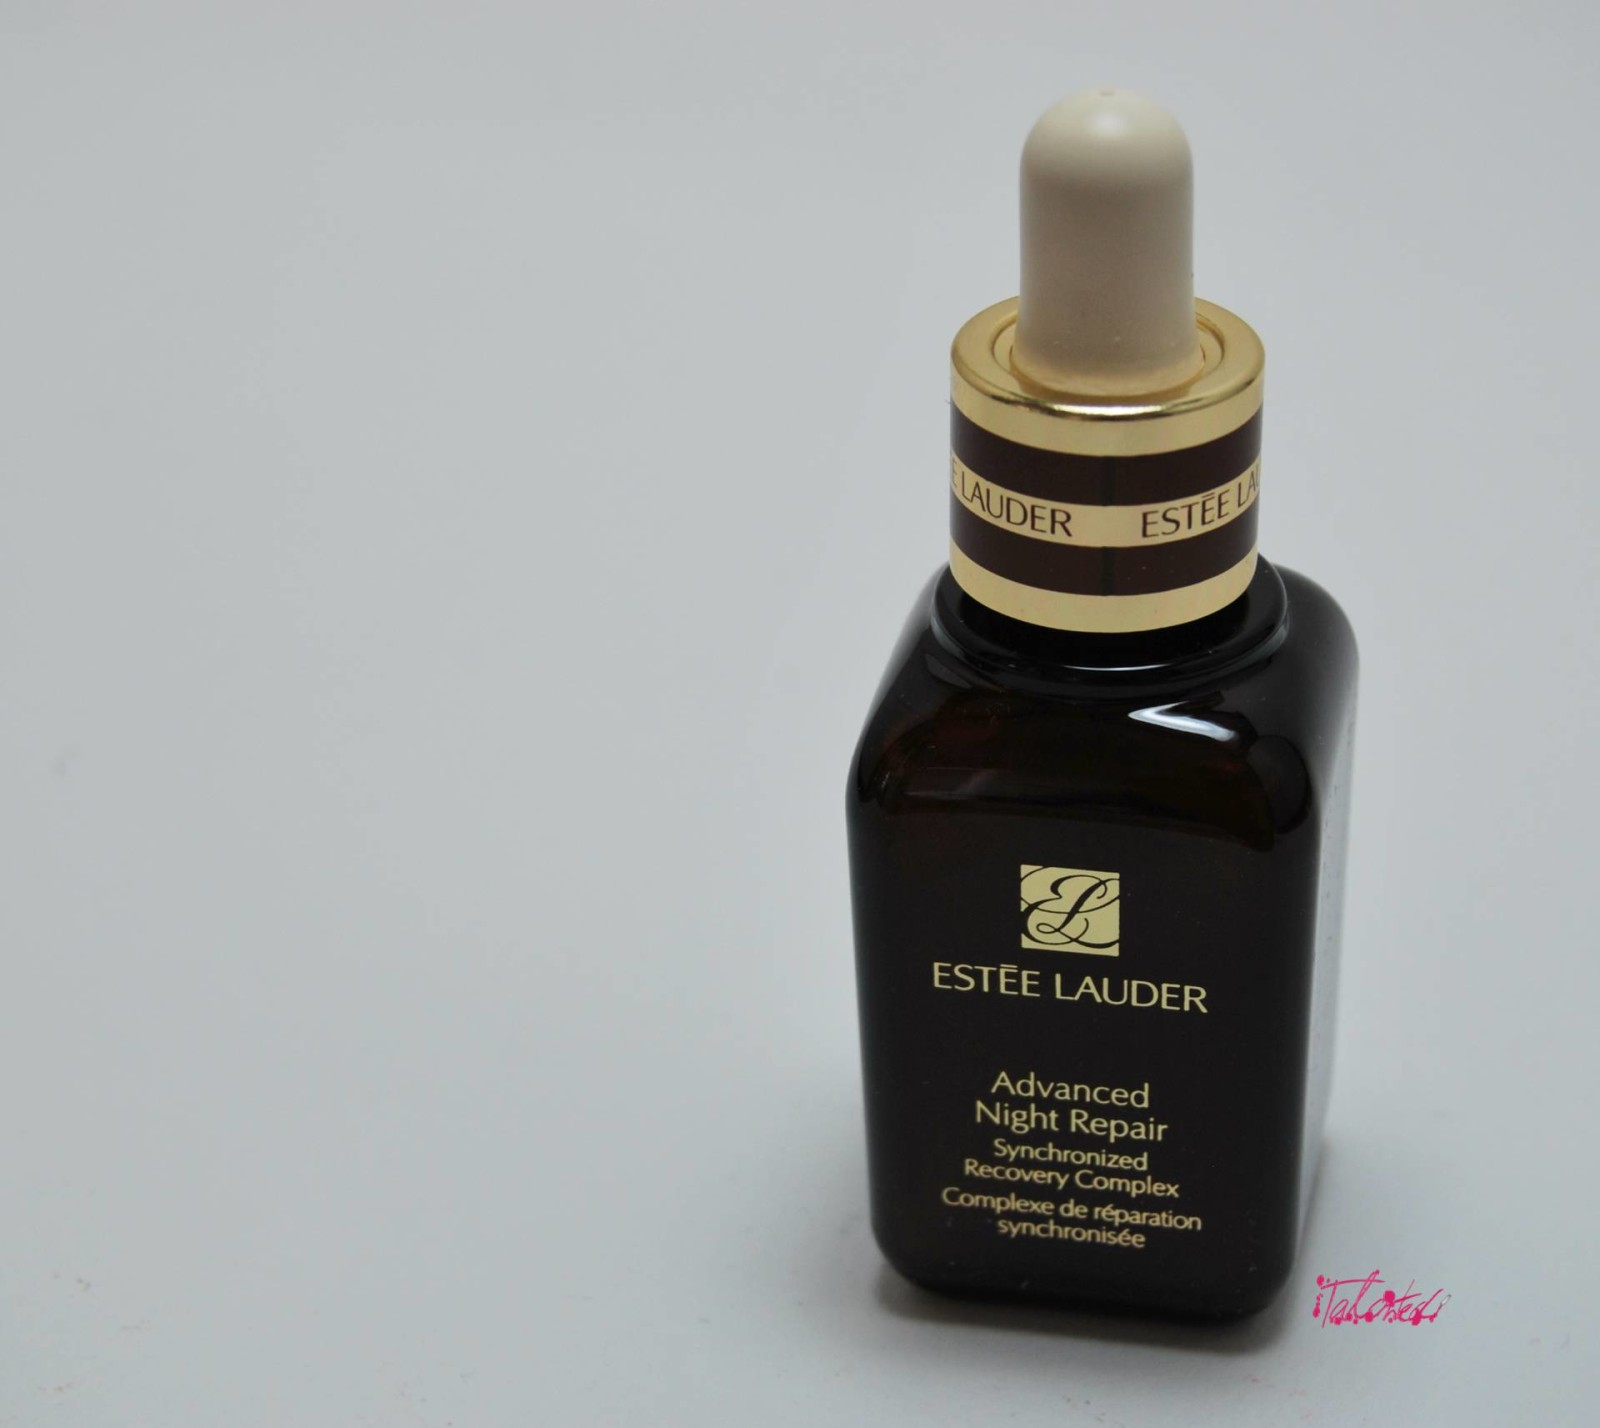 Estee Lauder Advanced Night Repair 2